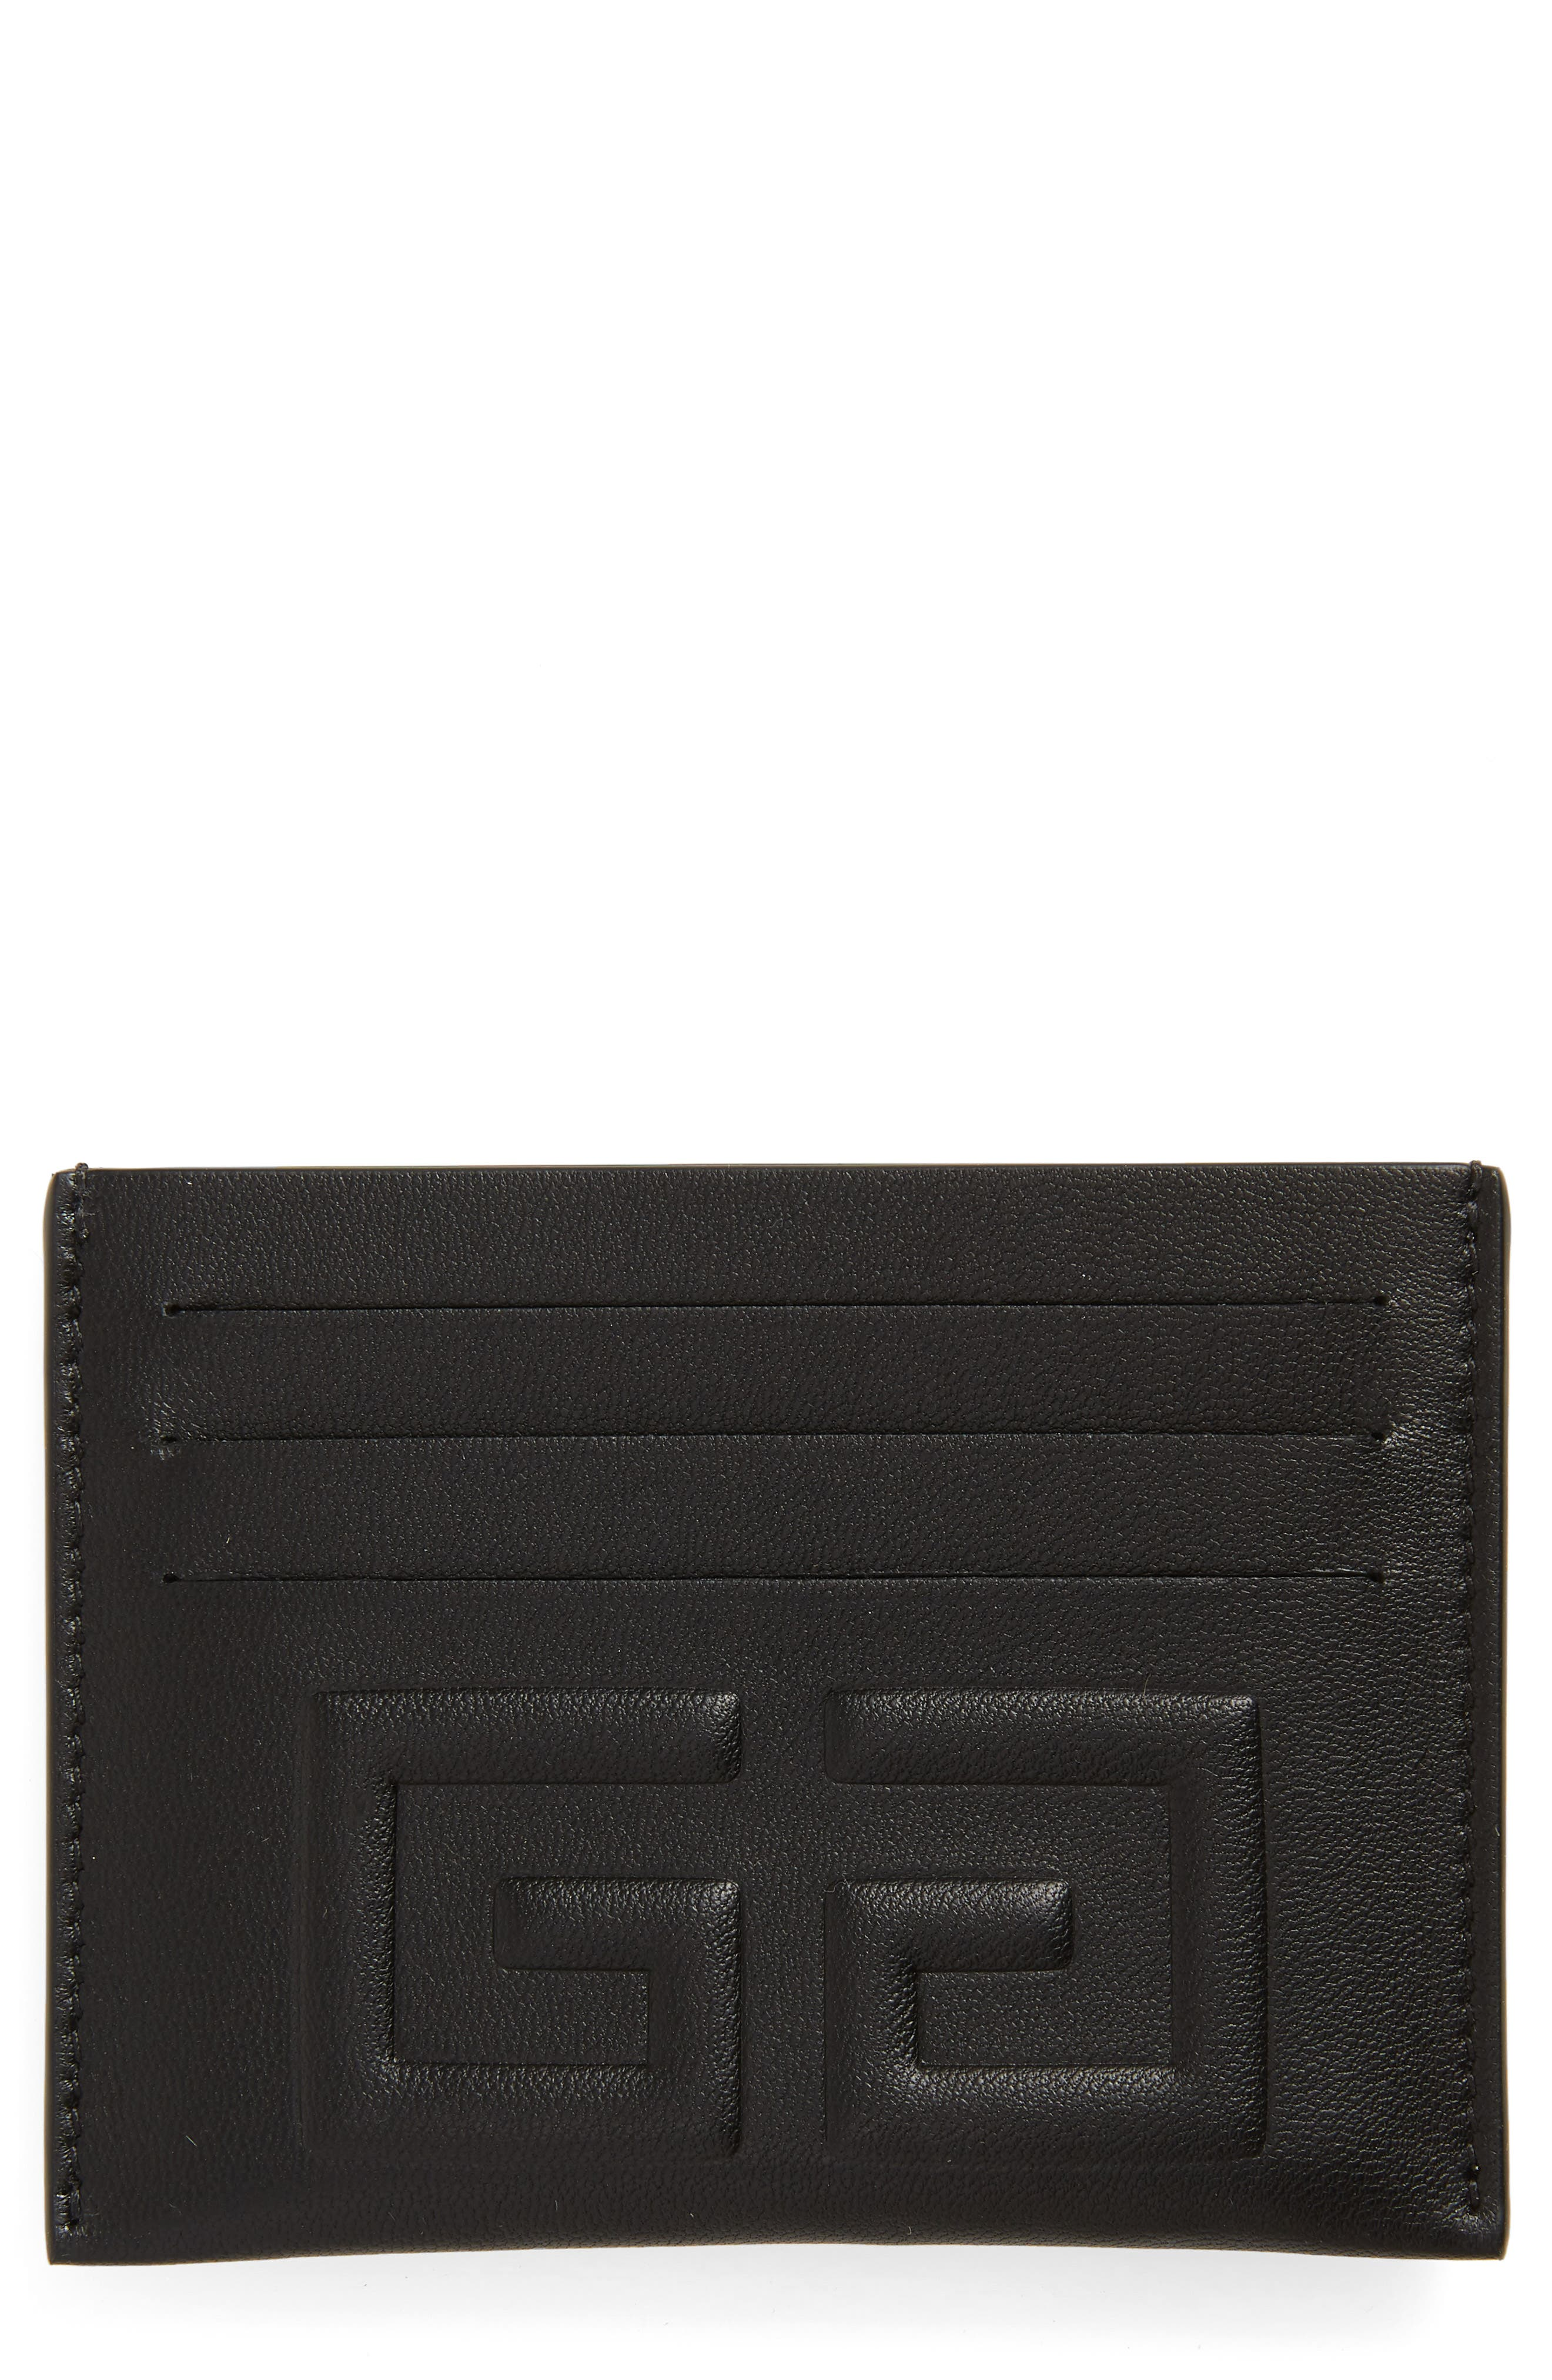 4G Leather Card Holder,                         Main,                         color, 006